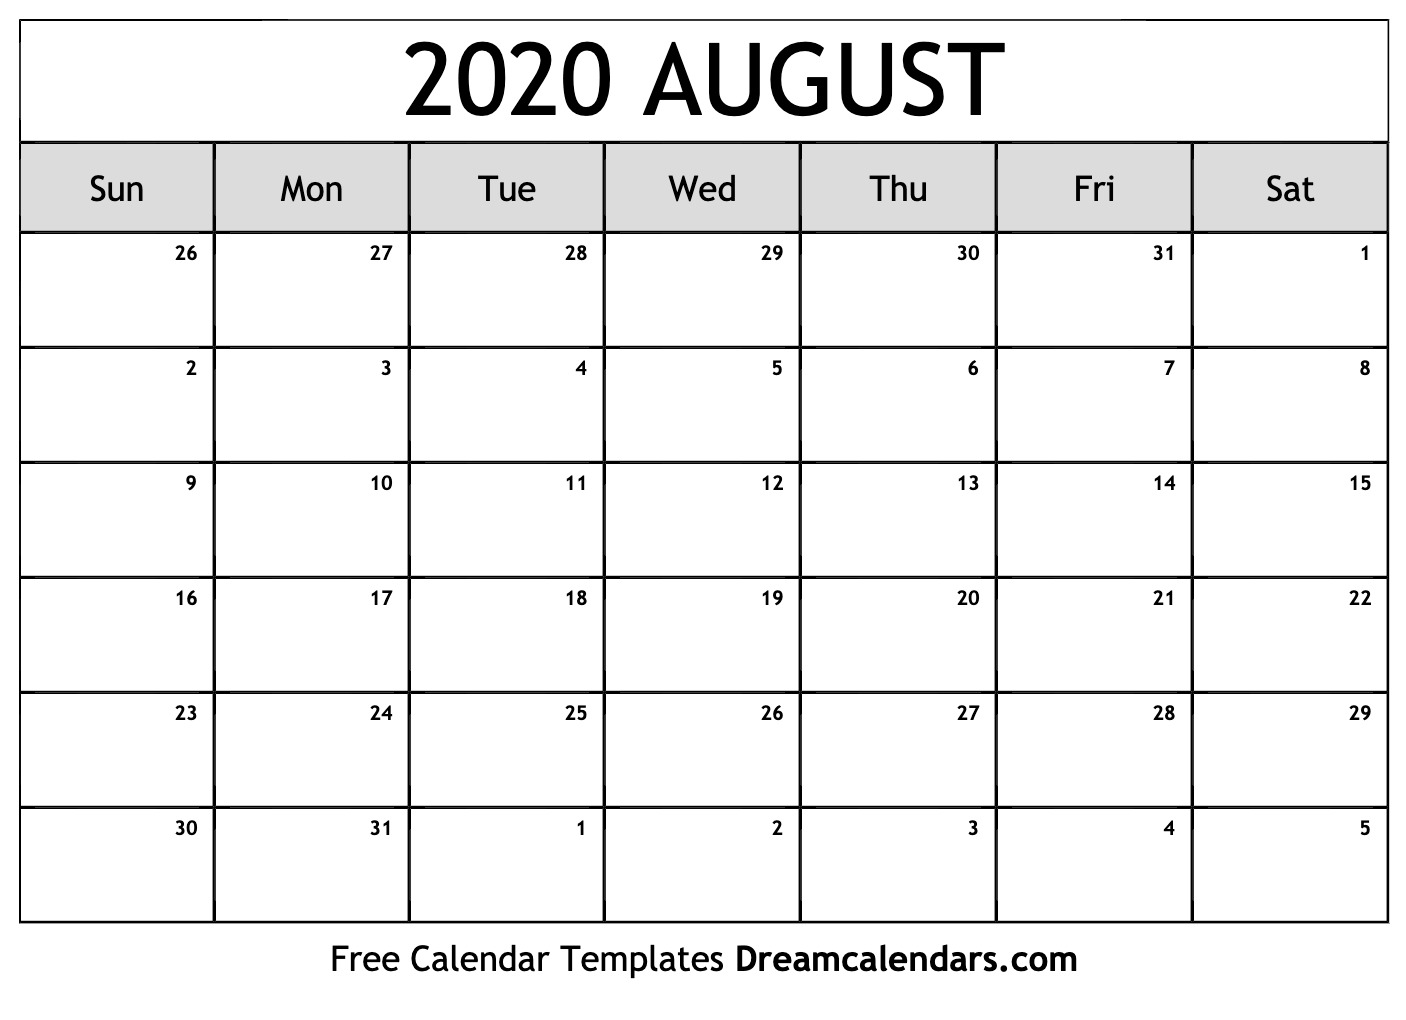 August 2020 Printable Calendar Dream Calendars 1406x1020